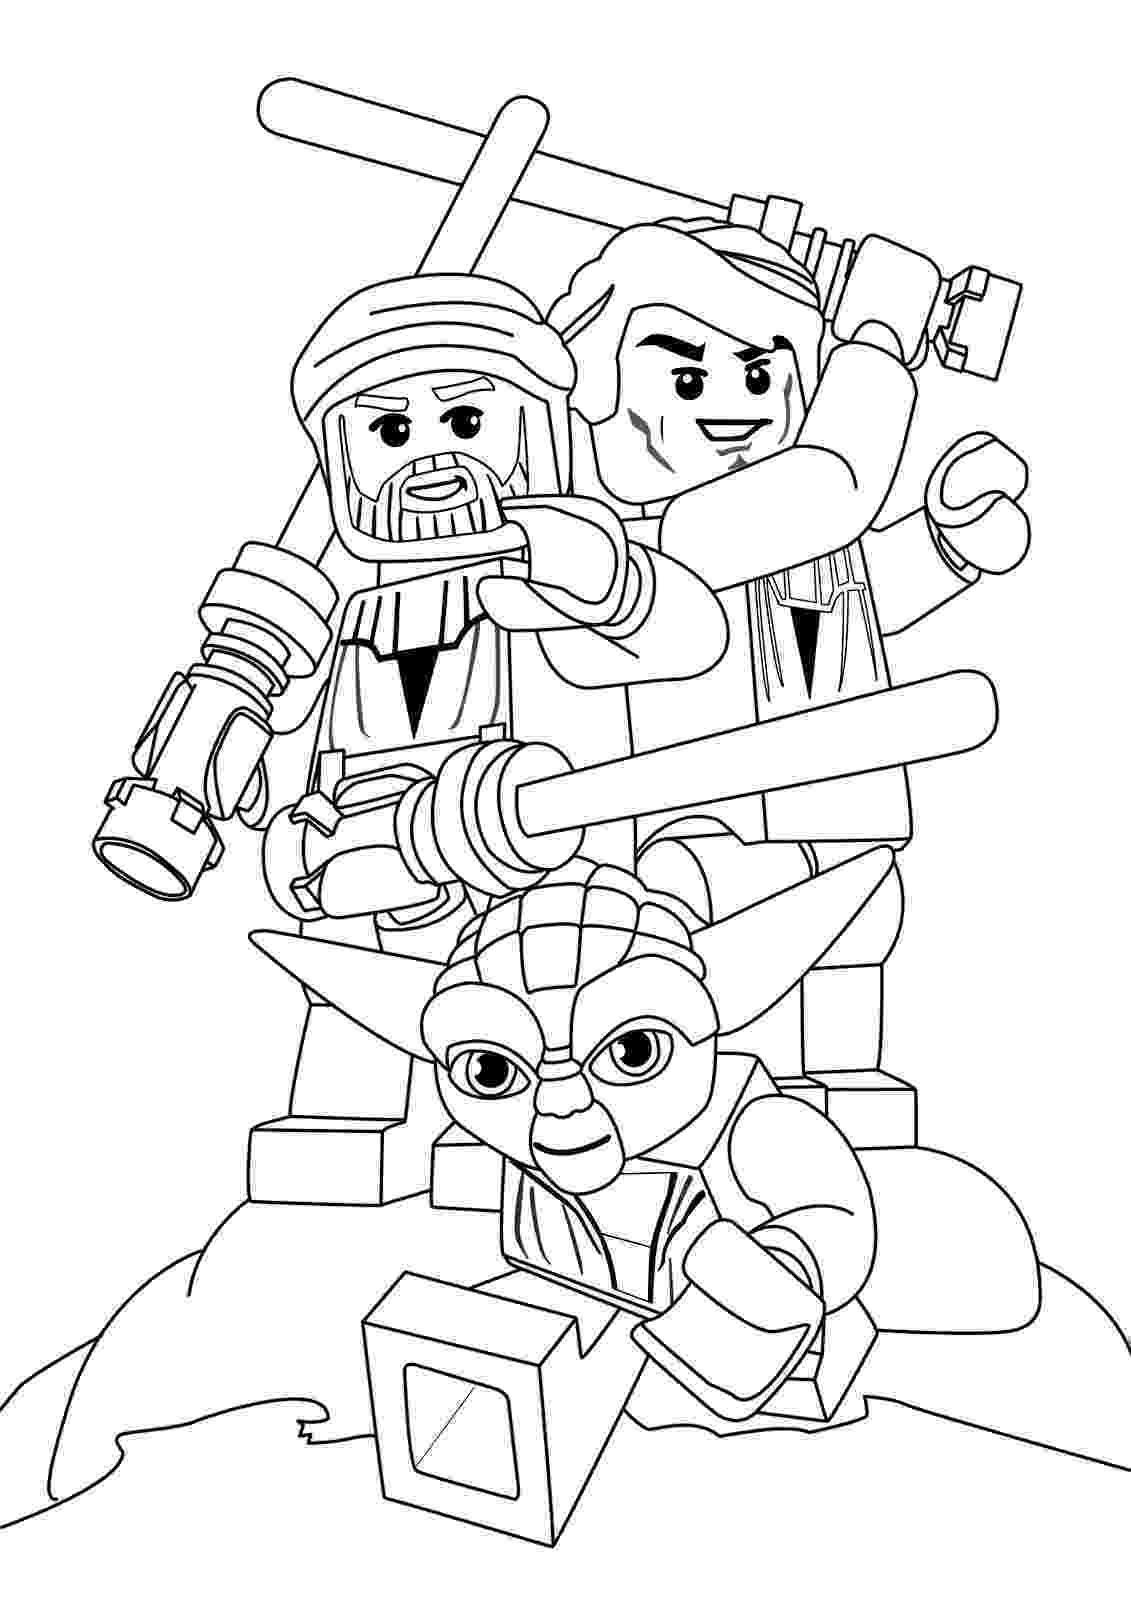 colouring pages lego star wars lego star wars coloring pages best coloring pages for kids star lego colouring pages wars